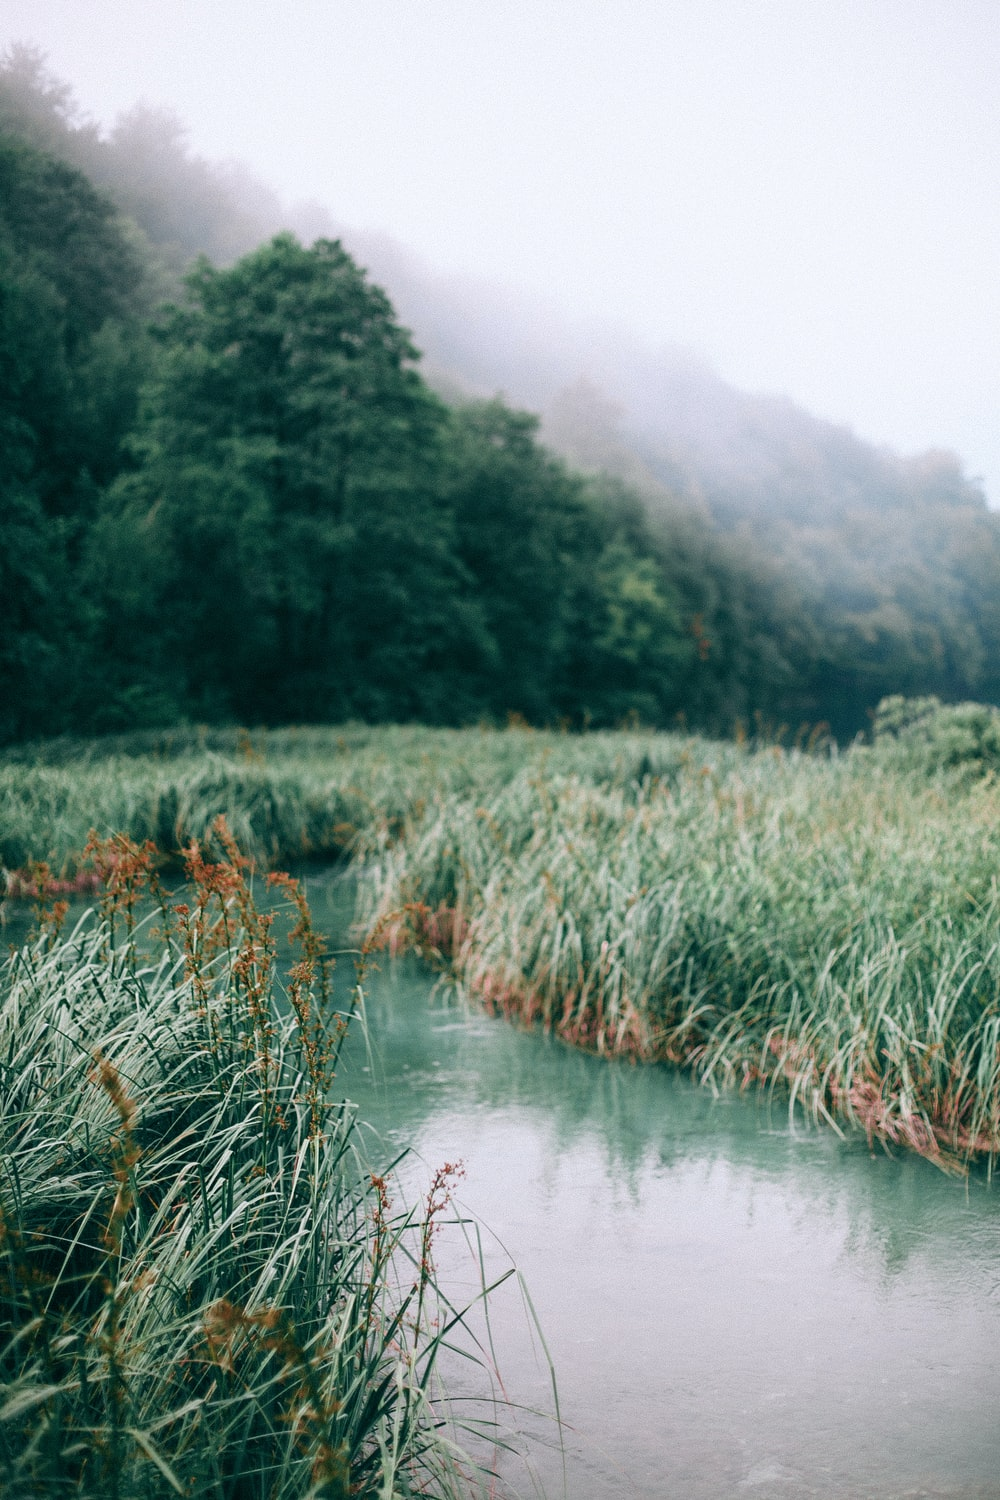 green grass with river flowing in between